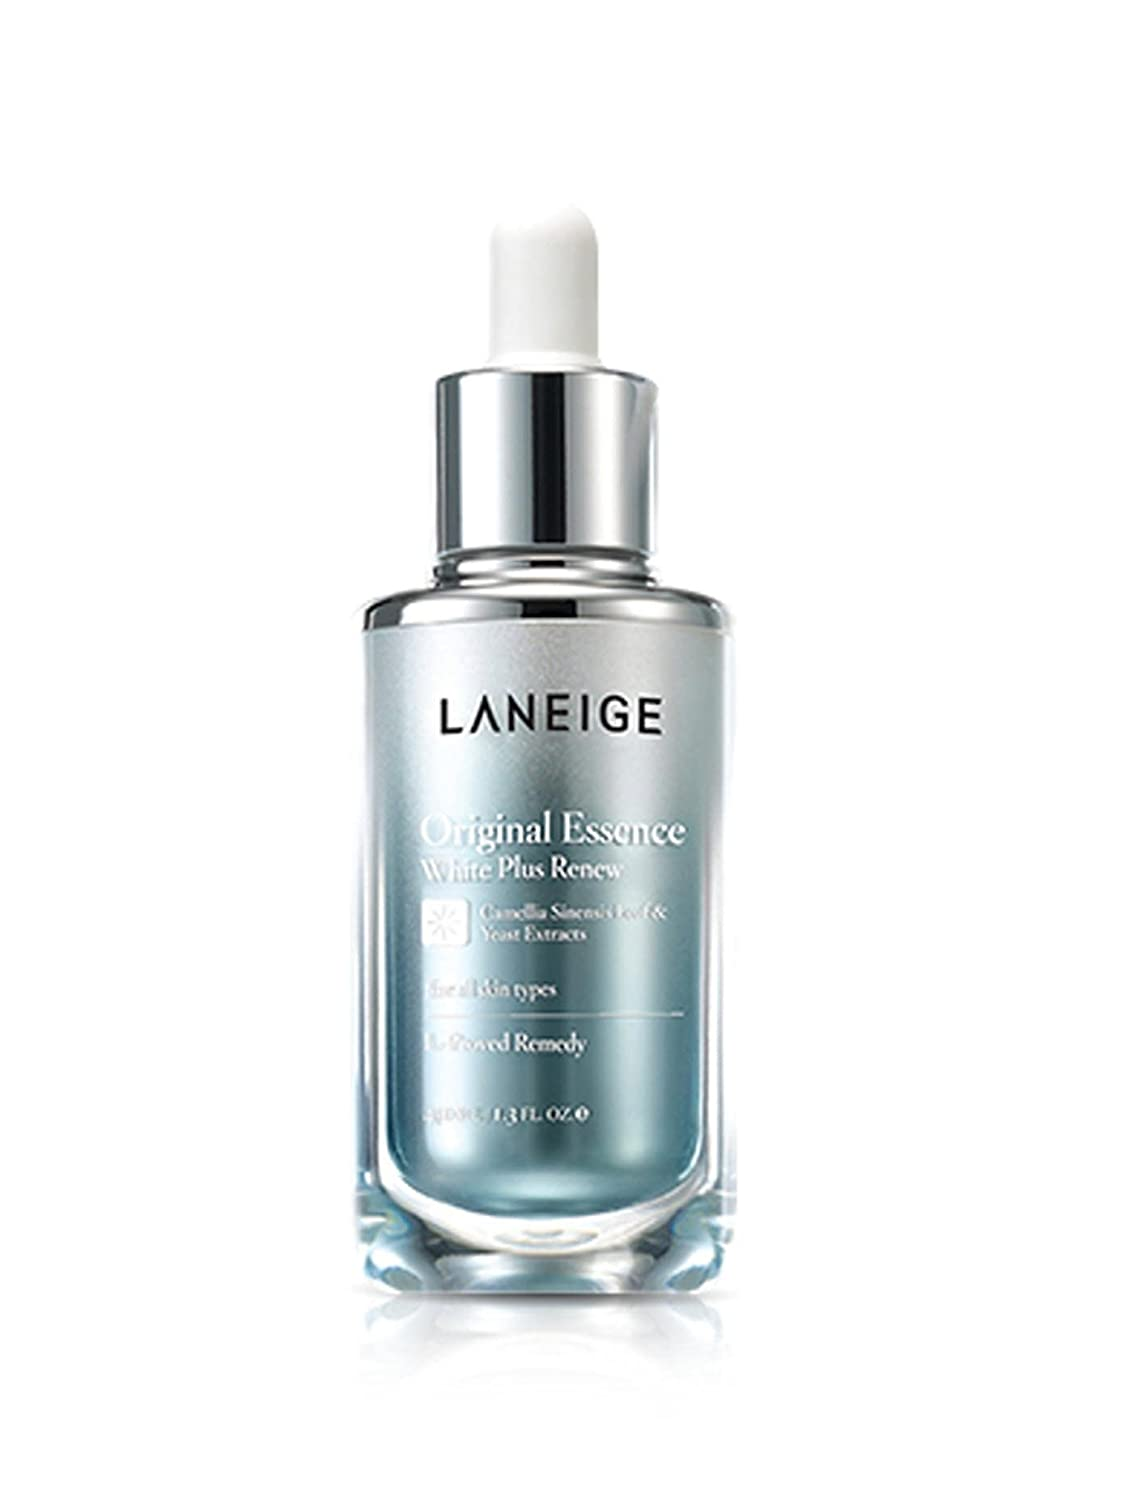 Laneige Original Essence White Plus Renew 40ml [Misc.] Beautyshop bb-omds-yuiu-siam248